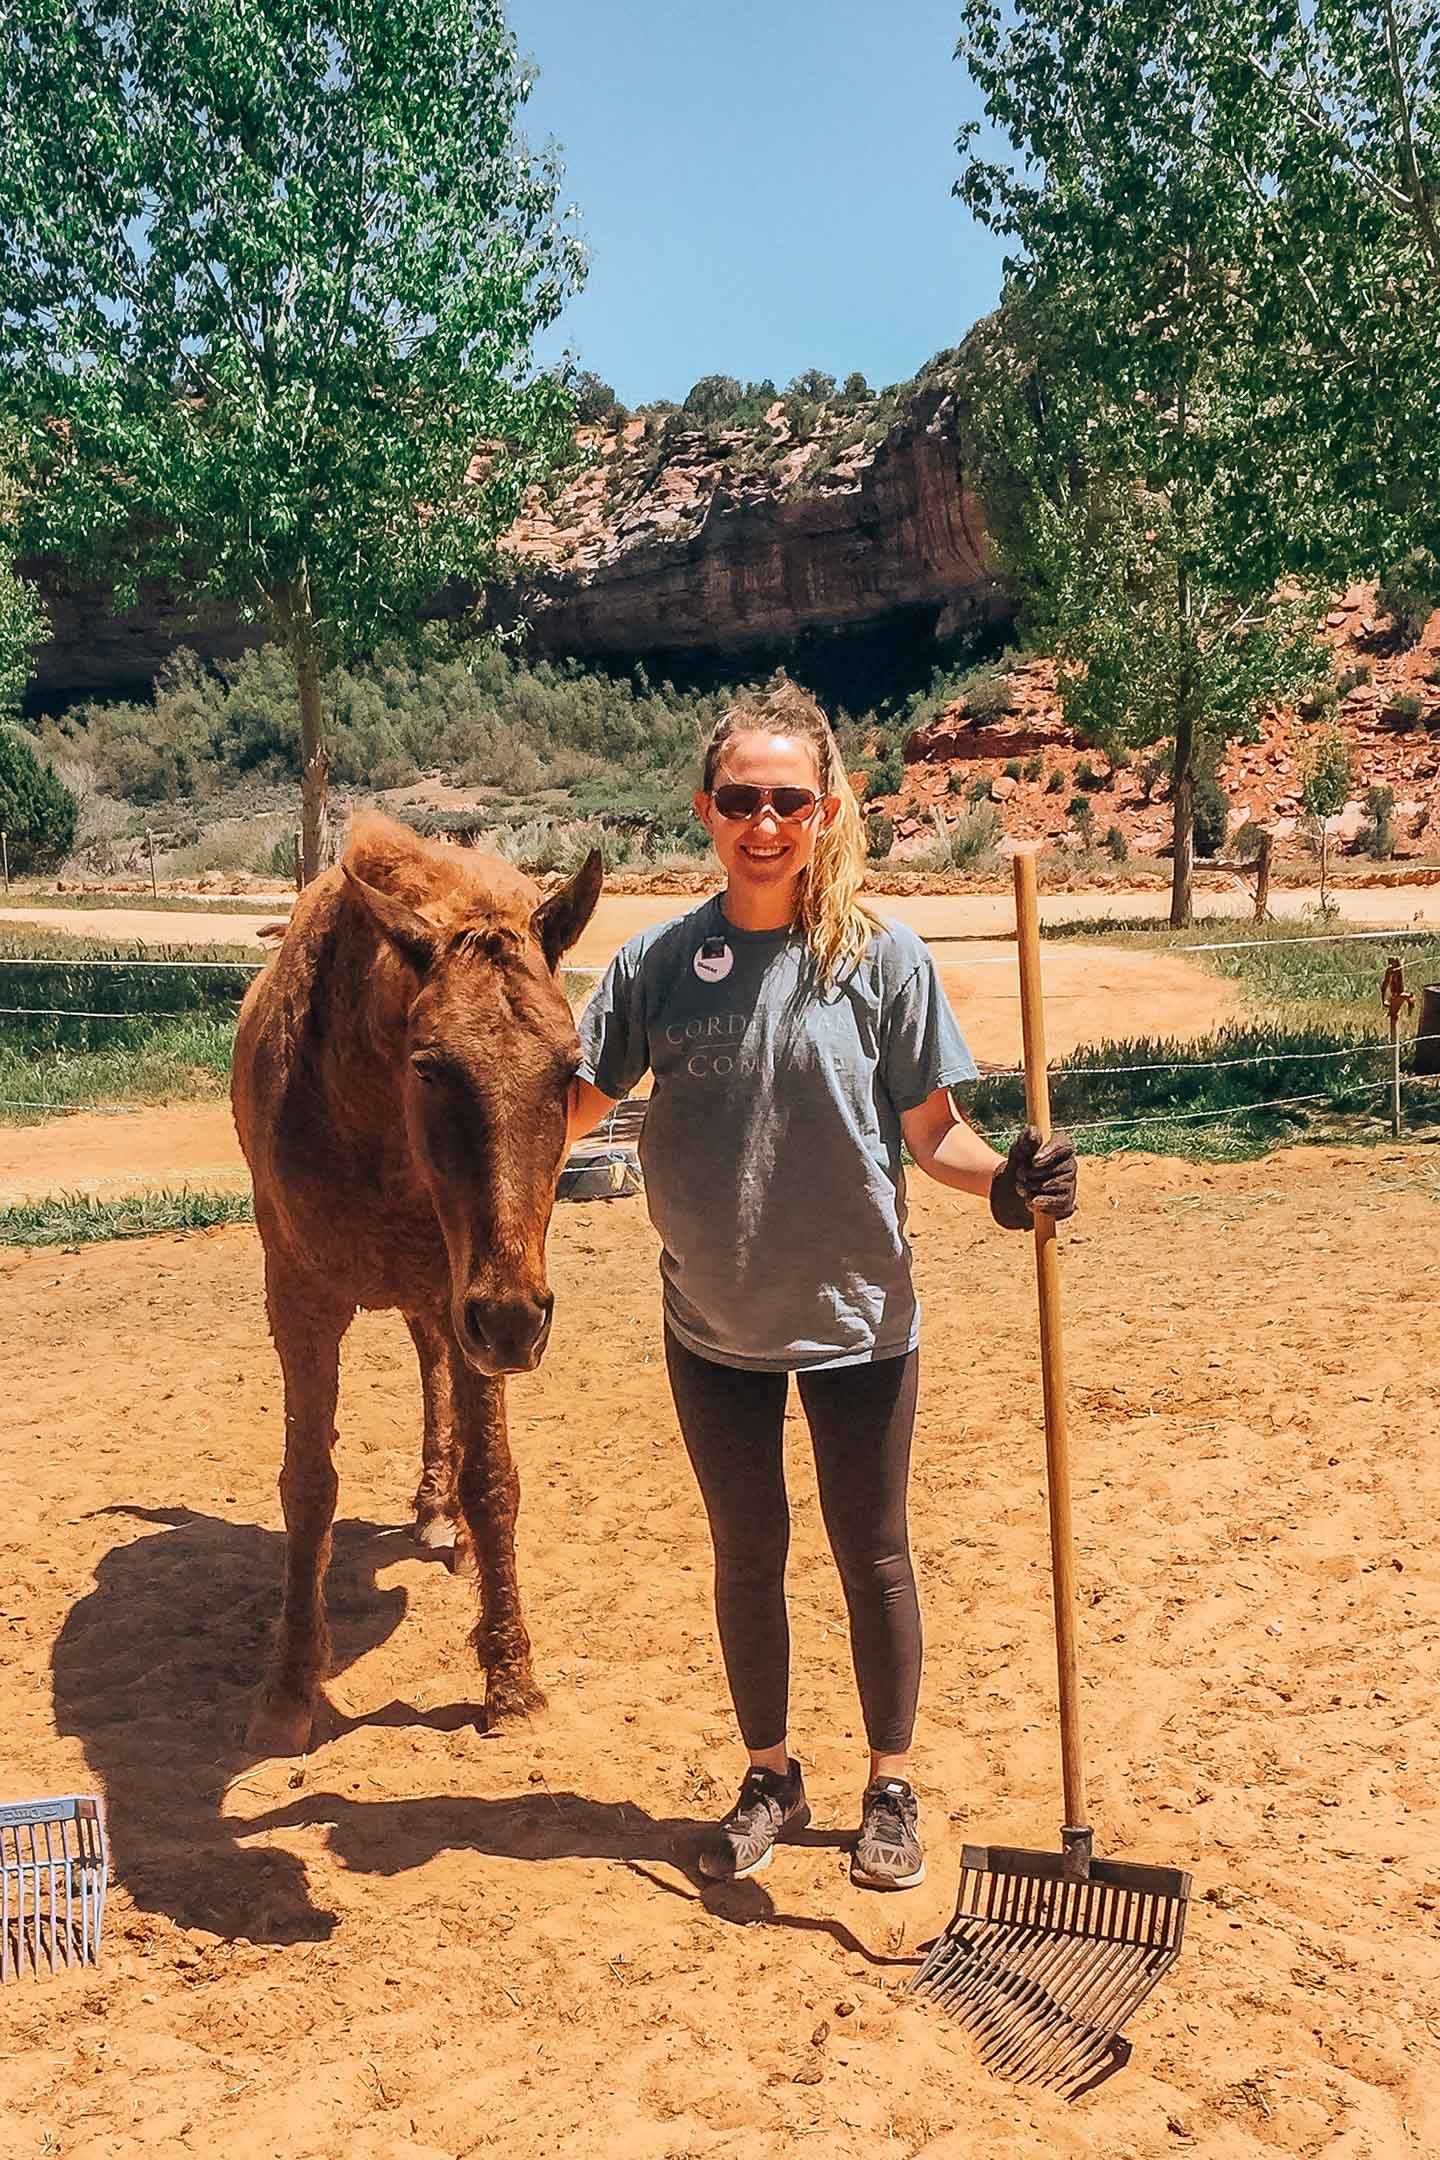 Hannah standing next to a horse and holding a rake while volunteering at Best Friends Animal Society Sanctuary